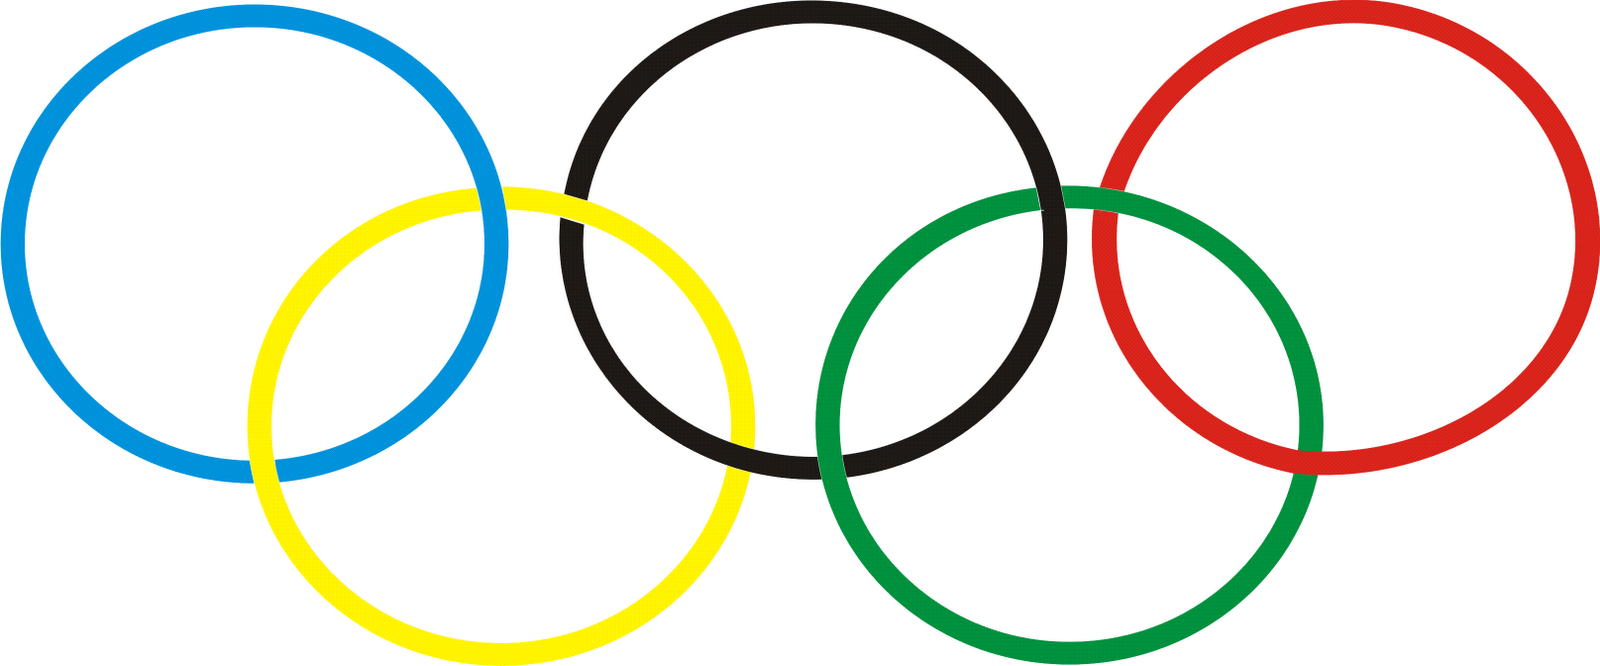 JUEGOS OLIMPICOS by jmmf.93 on Genial.ly.